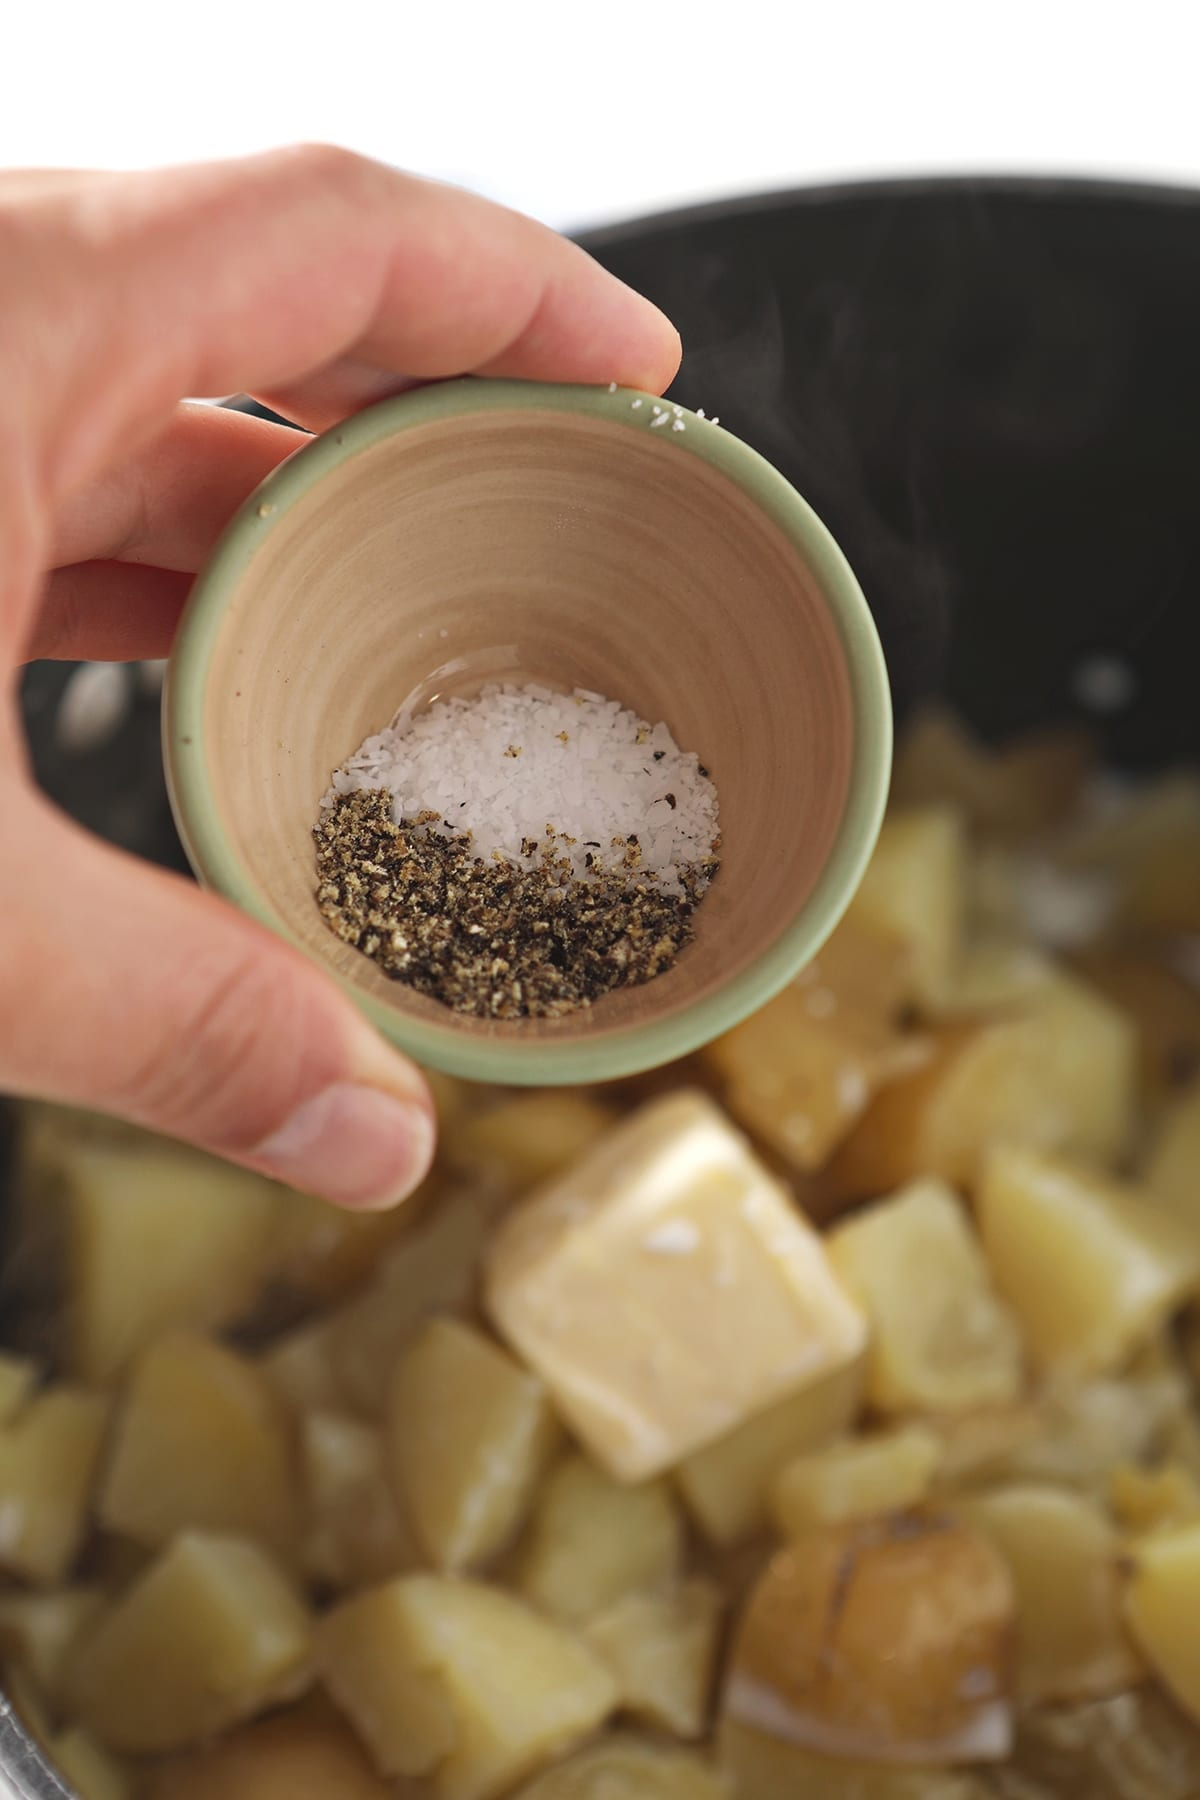 Salt and pepper are sprinkled from a bowl into a pot holding potatoes and other ingredients